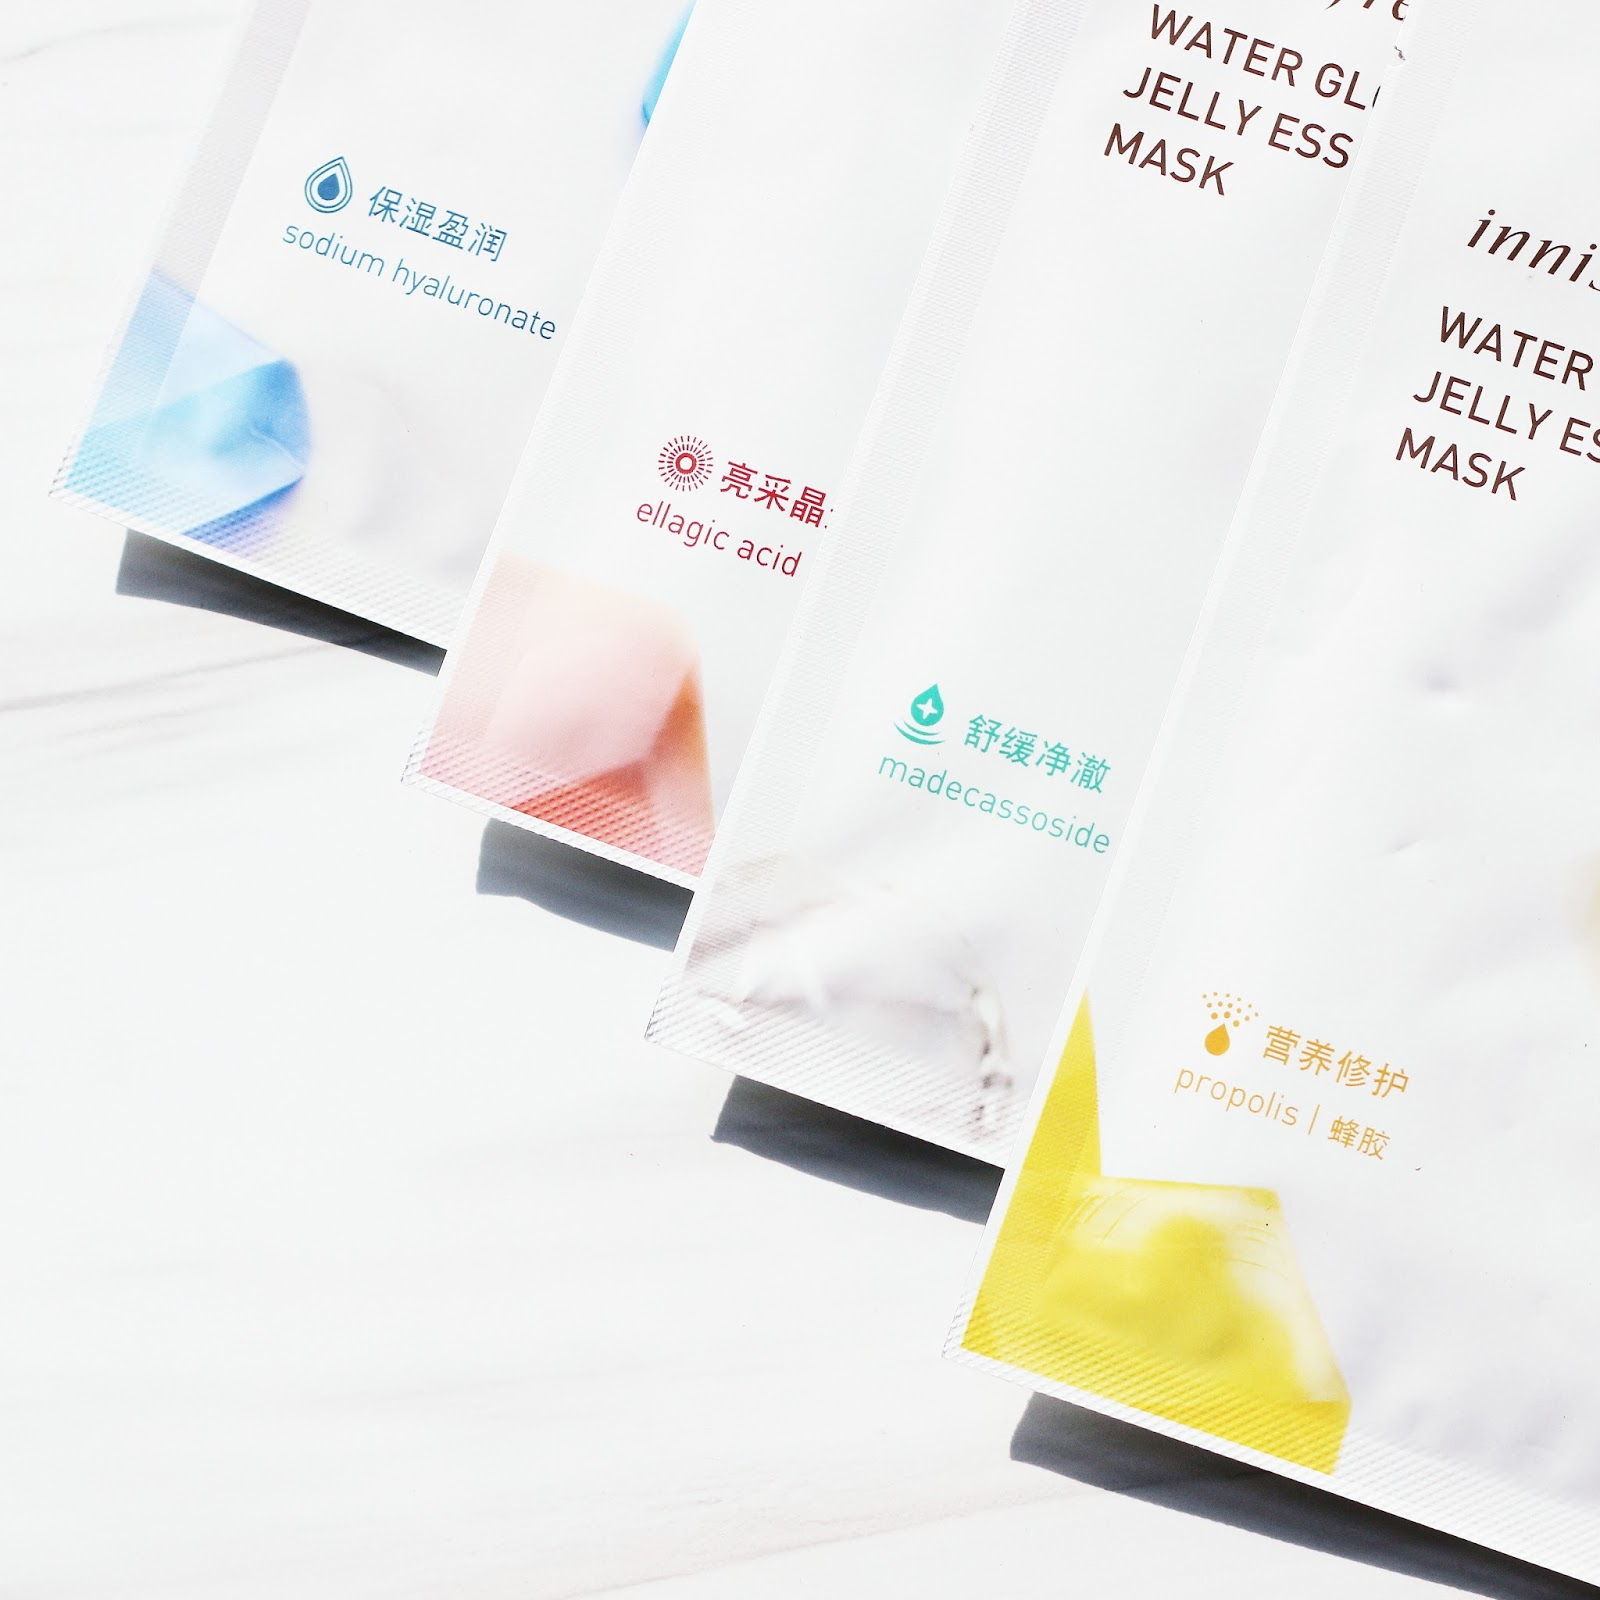 Innisfree Water Glow Jelly Essence Mask Review 悦诗风吟 水光果冻面膜